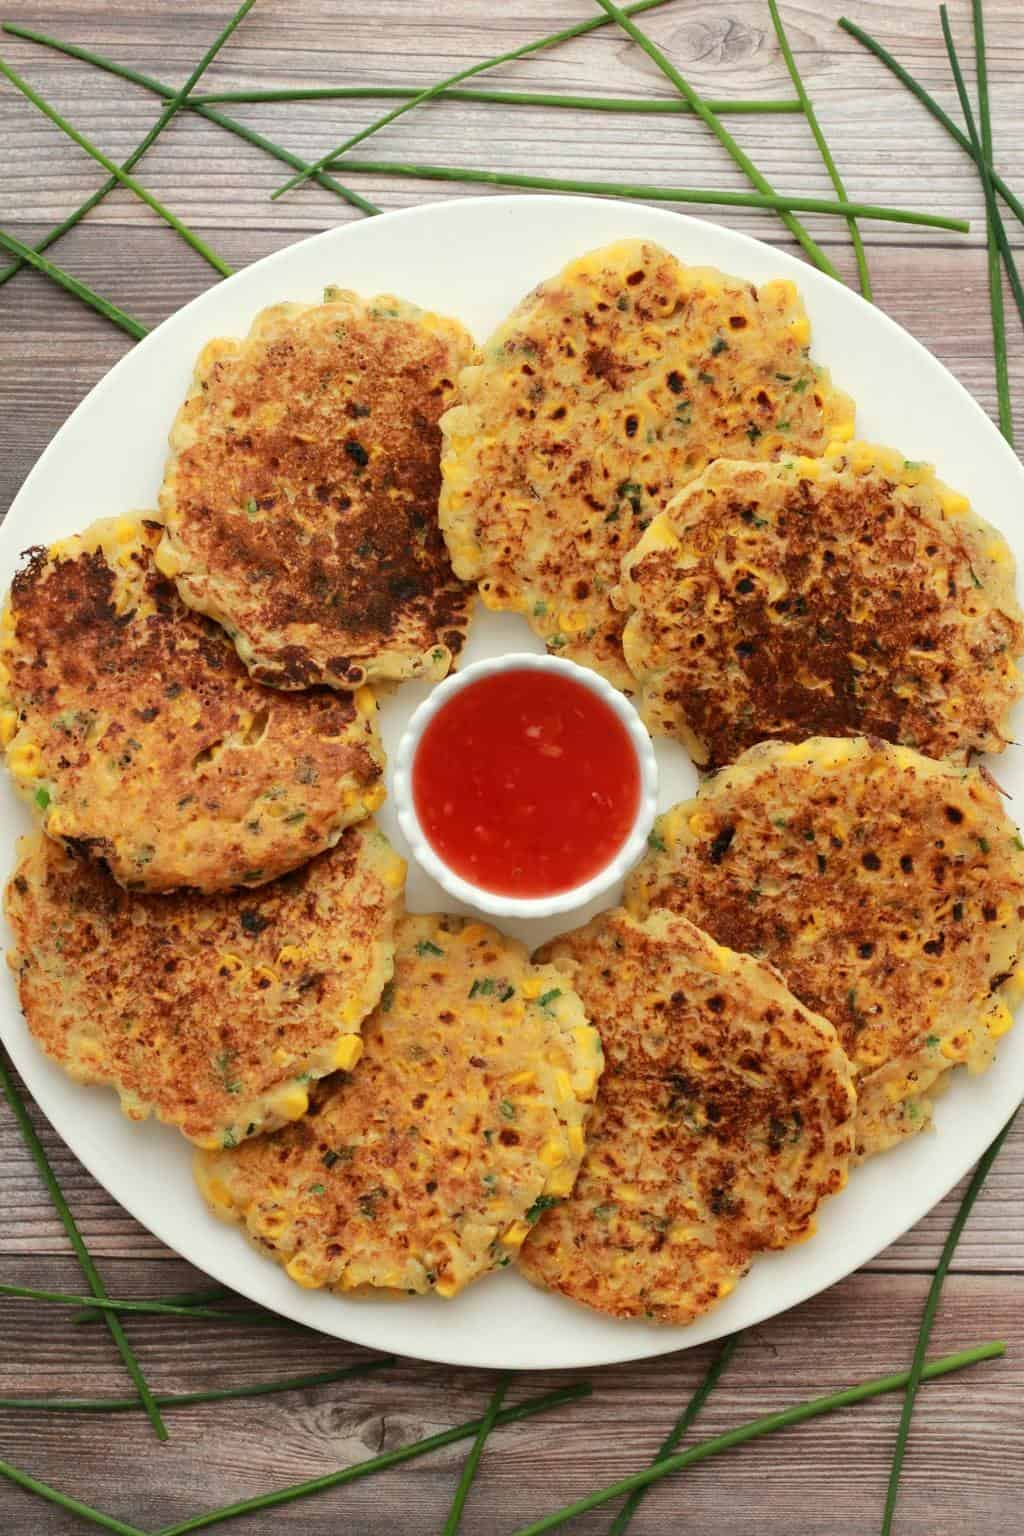 Vegan corn fritters on a white plate with a bowl of sweet chili sauce.